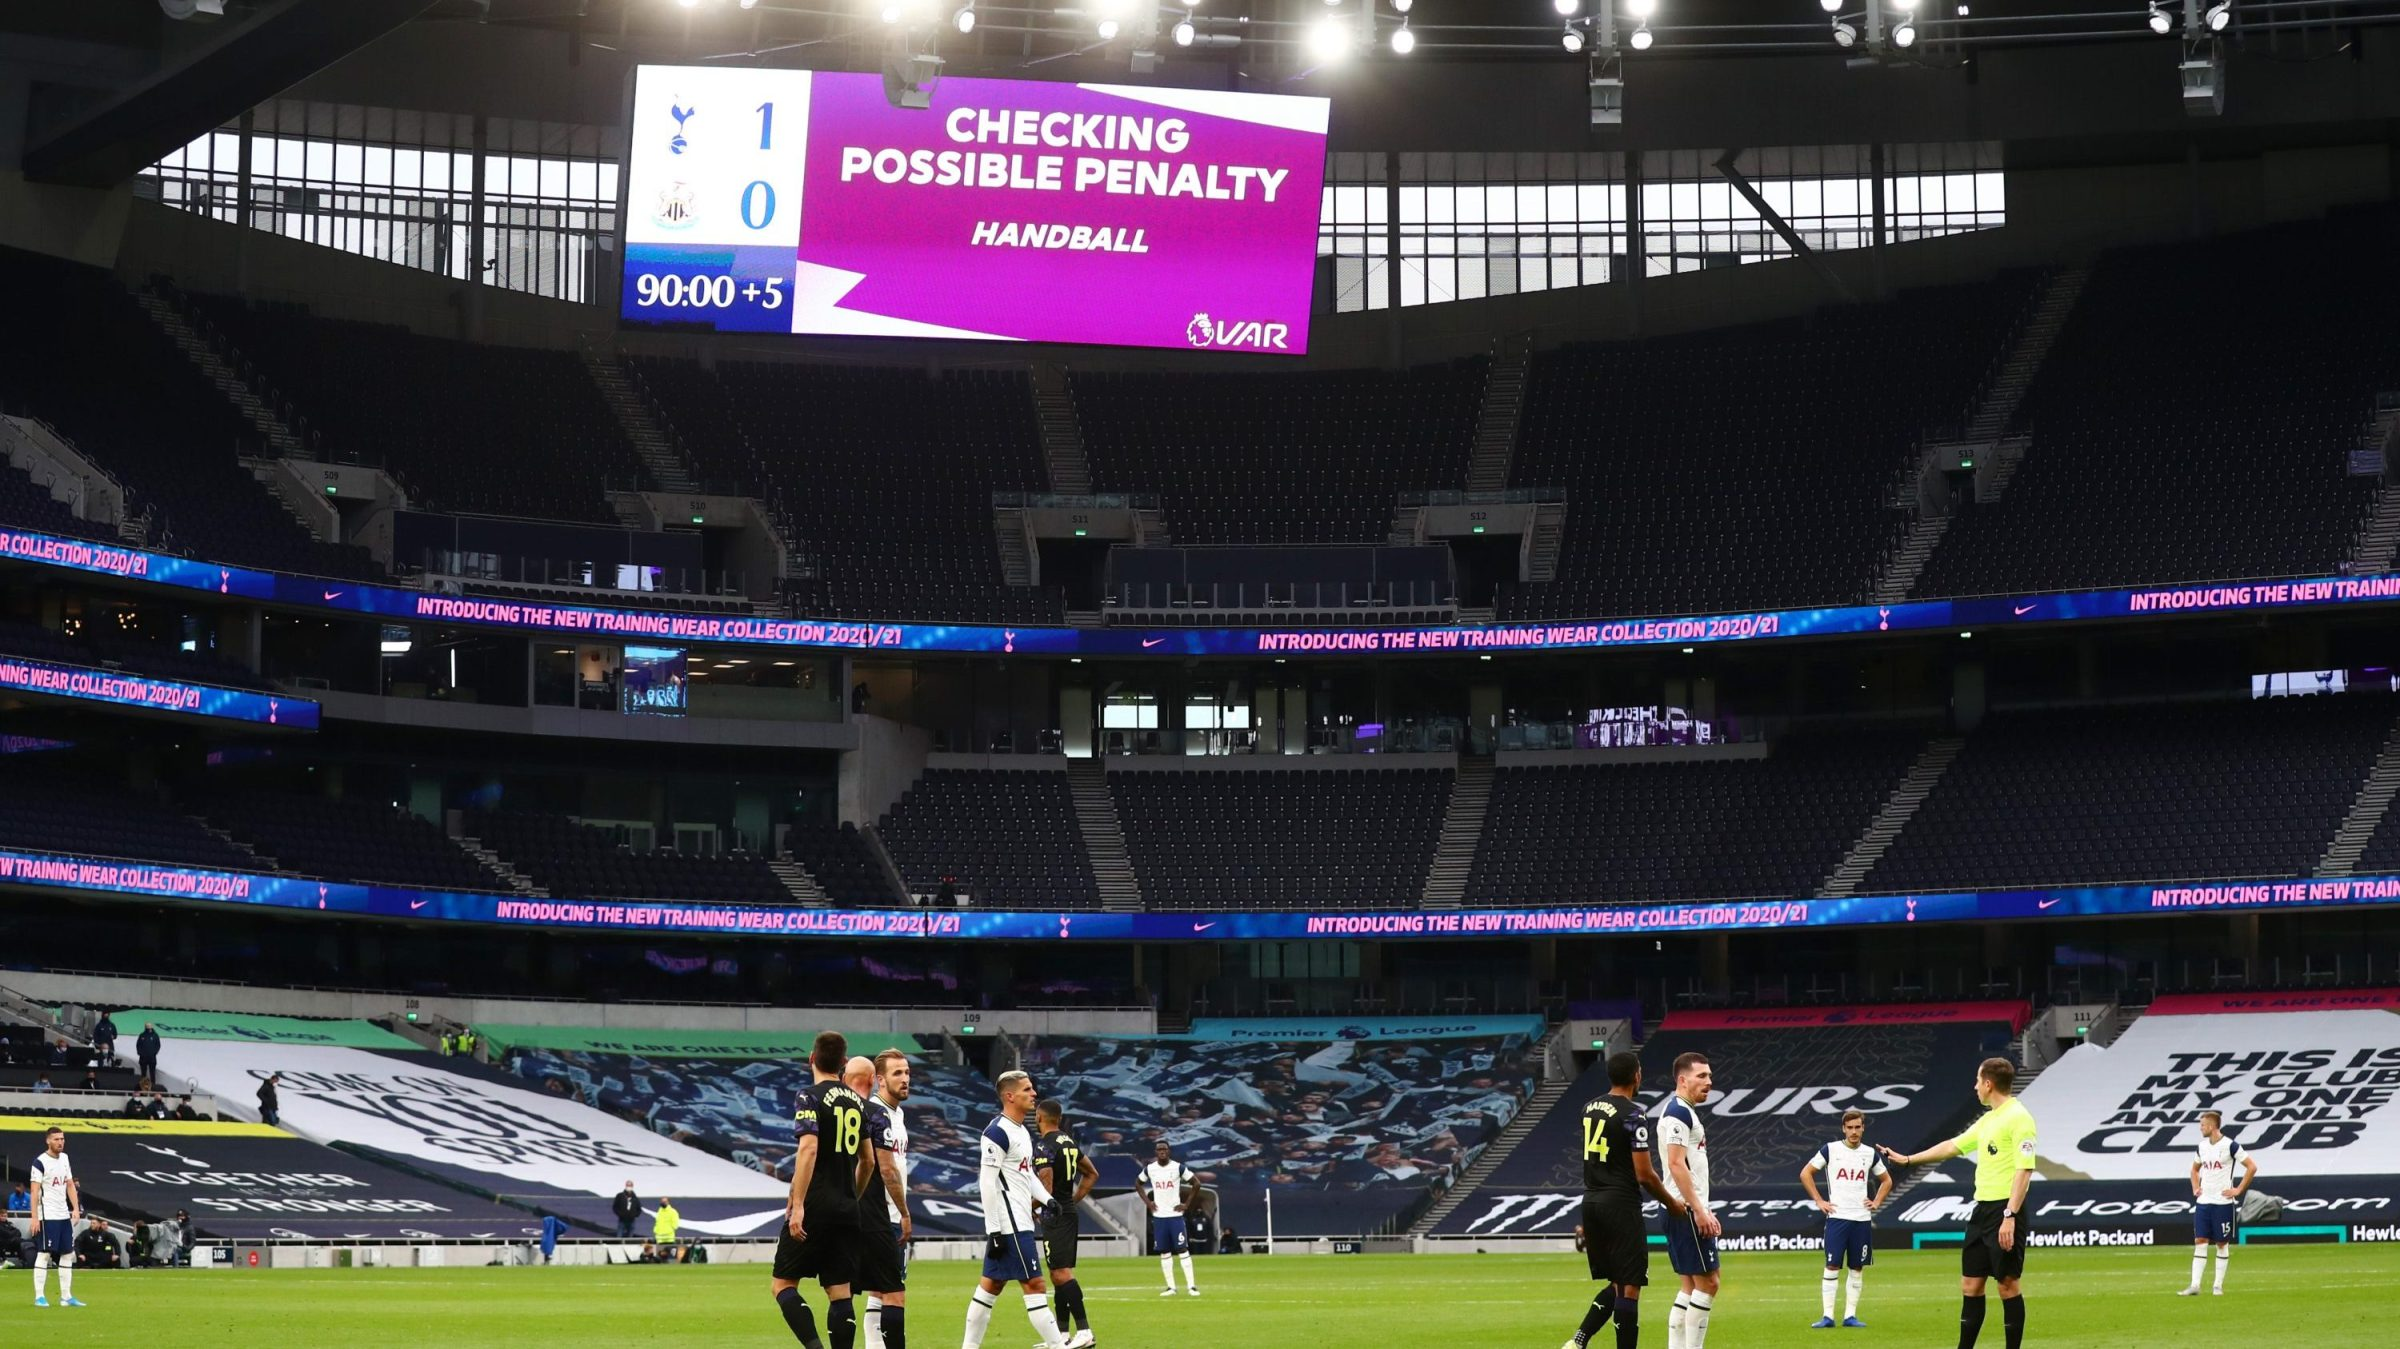 A screen inside the stadium displays the decision to check VAR for a possible penalty during the Premier League match between Tottenham Hotspur and Newcastle United at Tottenham Hotspur Stadium on September 27, 2020